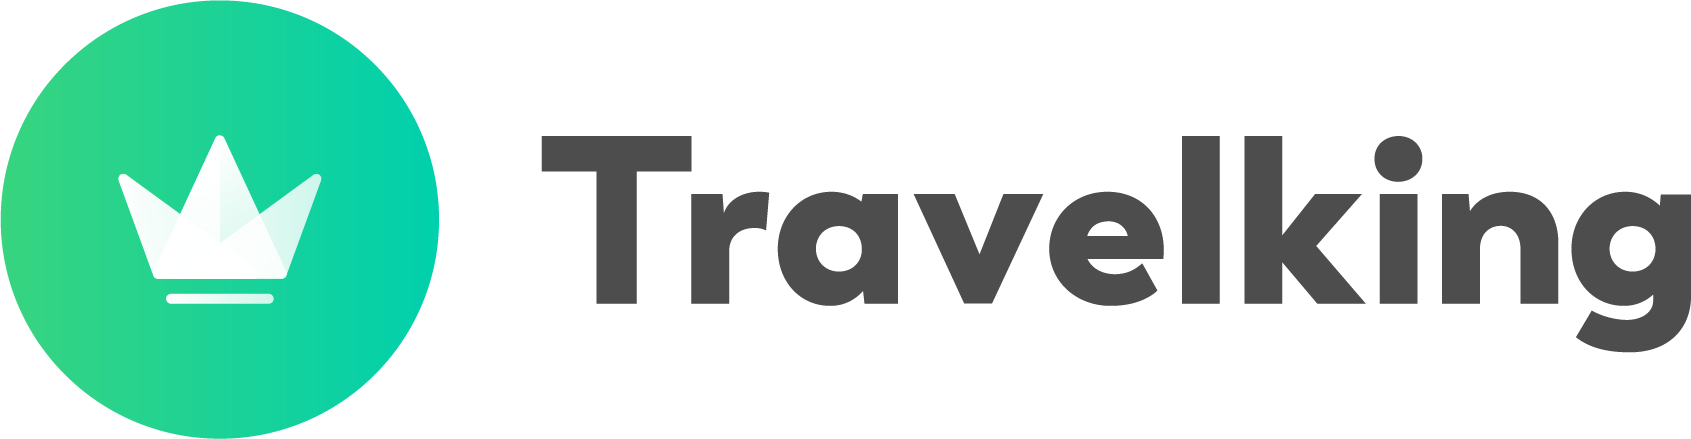 travelking_logo_base_black